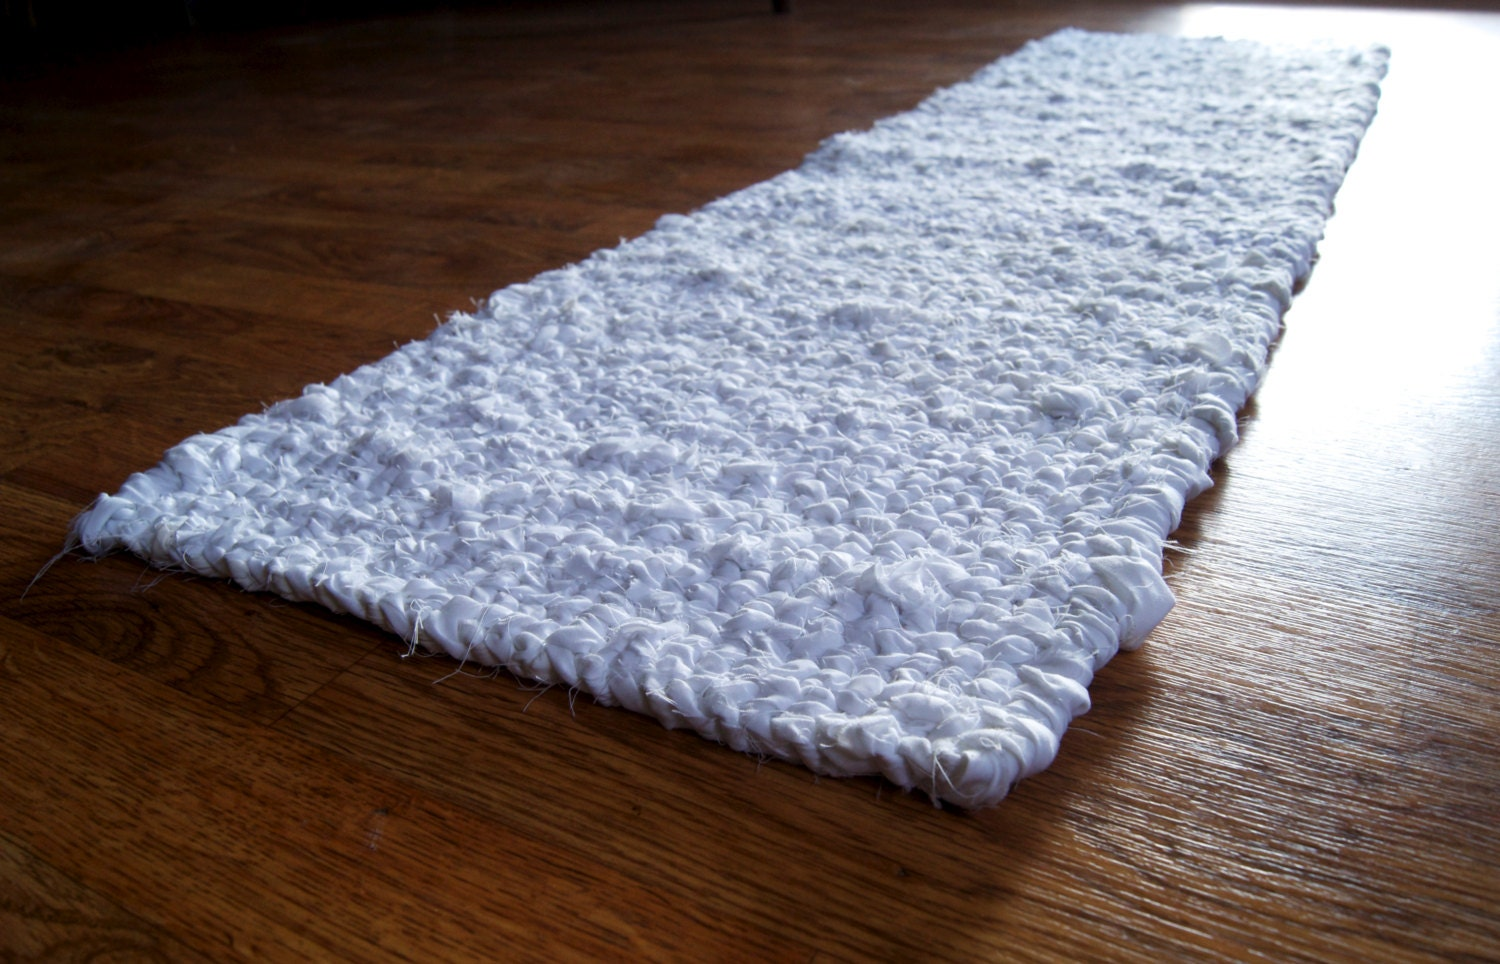 Twined Rag Rug Narrow Runner Hand Woven White Cotton Washable